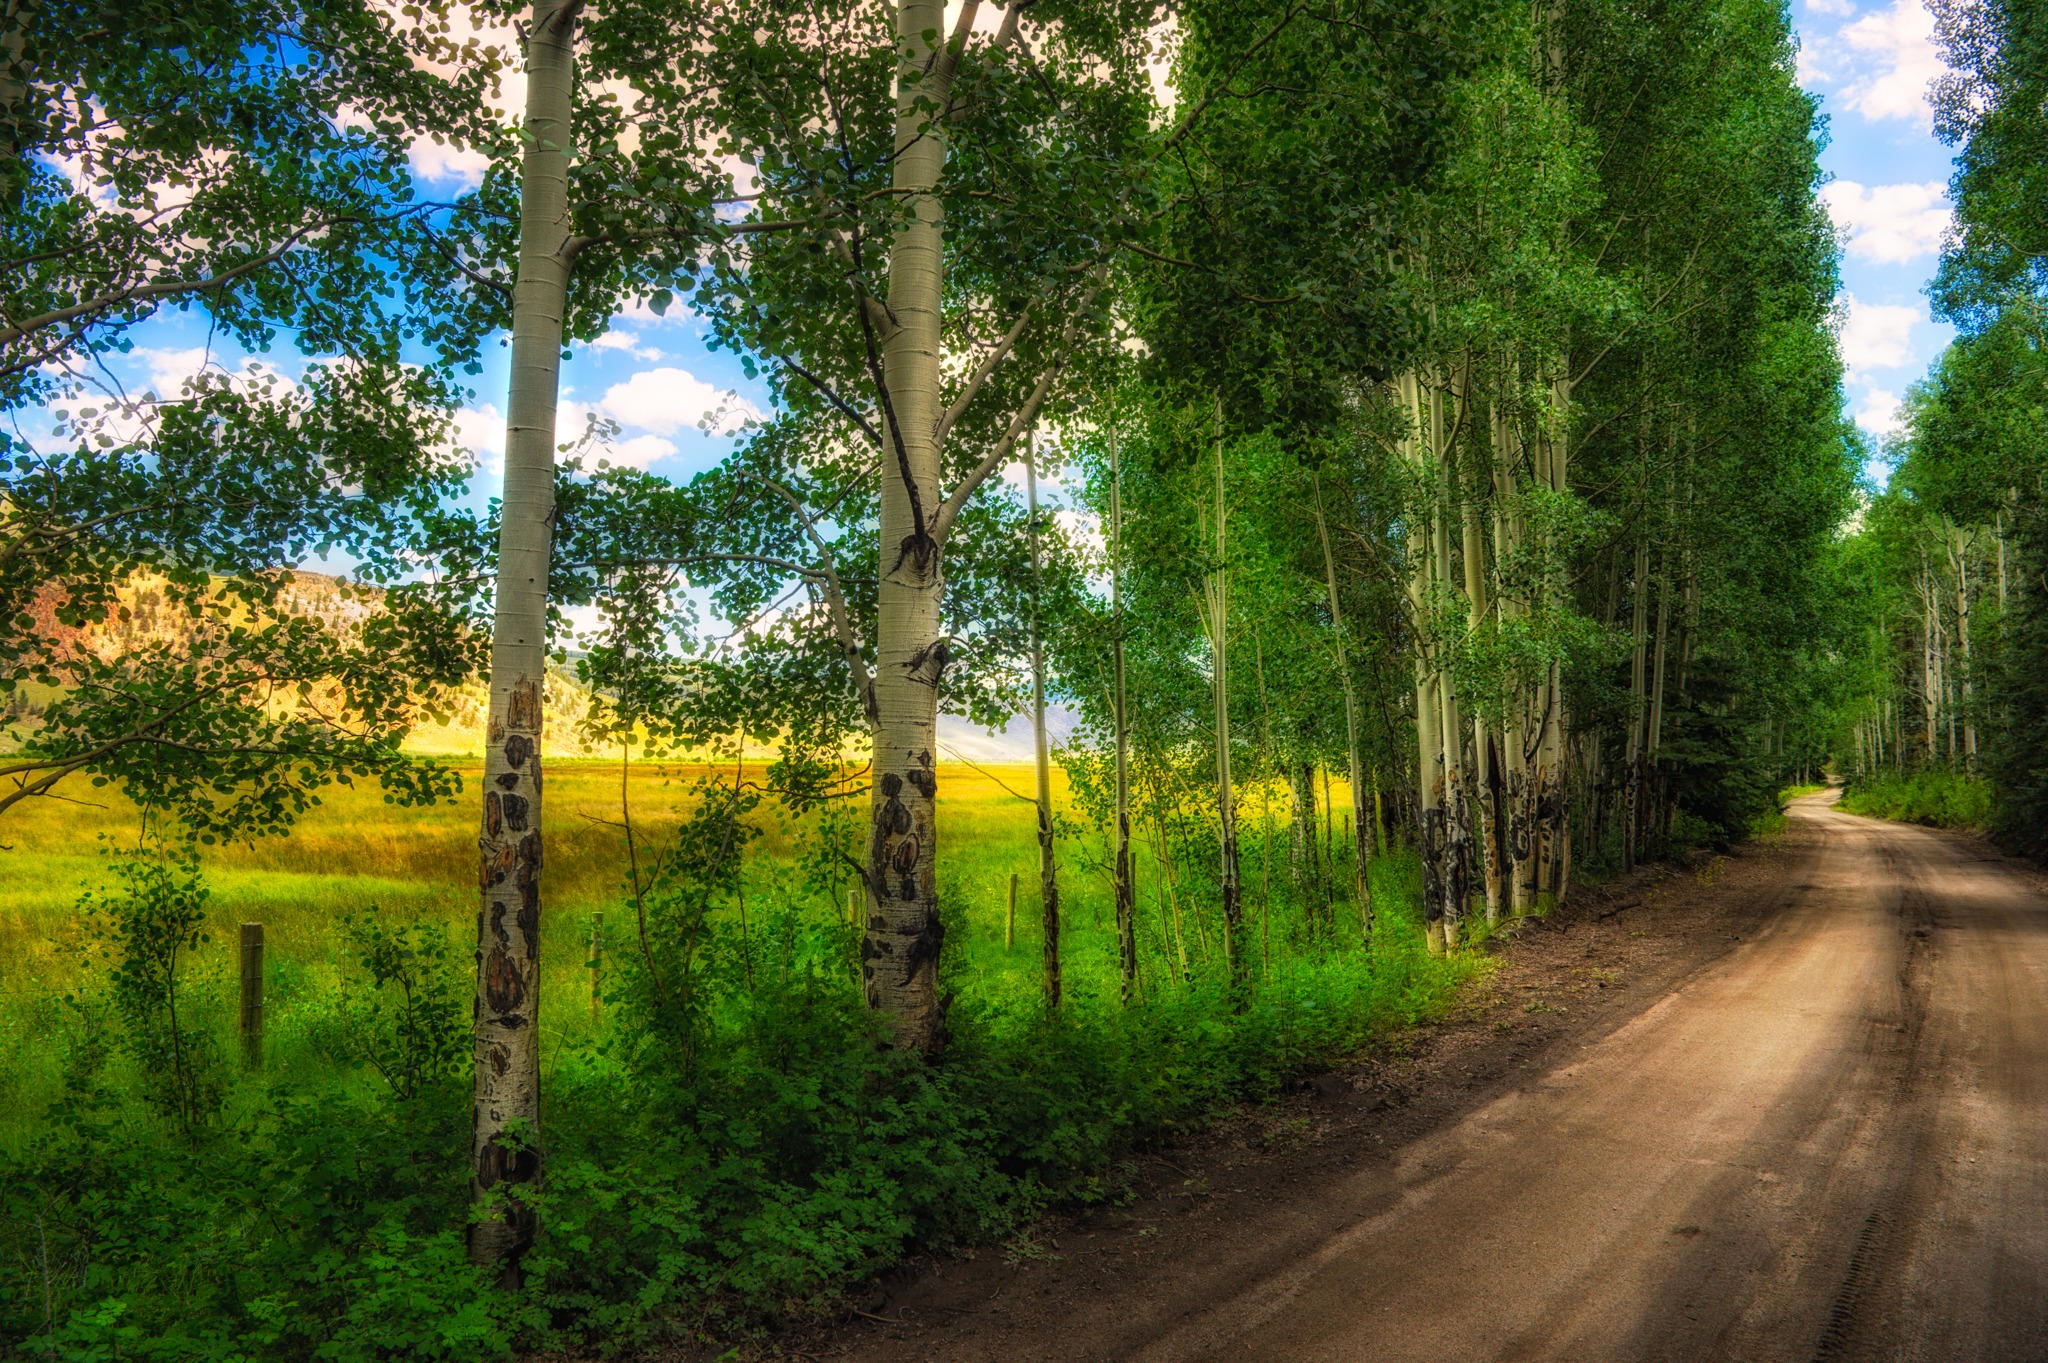 This tranquil view of a country dirt road was taken on Hinsdale County Road 50, northeast of the Cebolla Day Use Area near Lake City, Colorado.